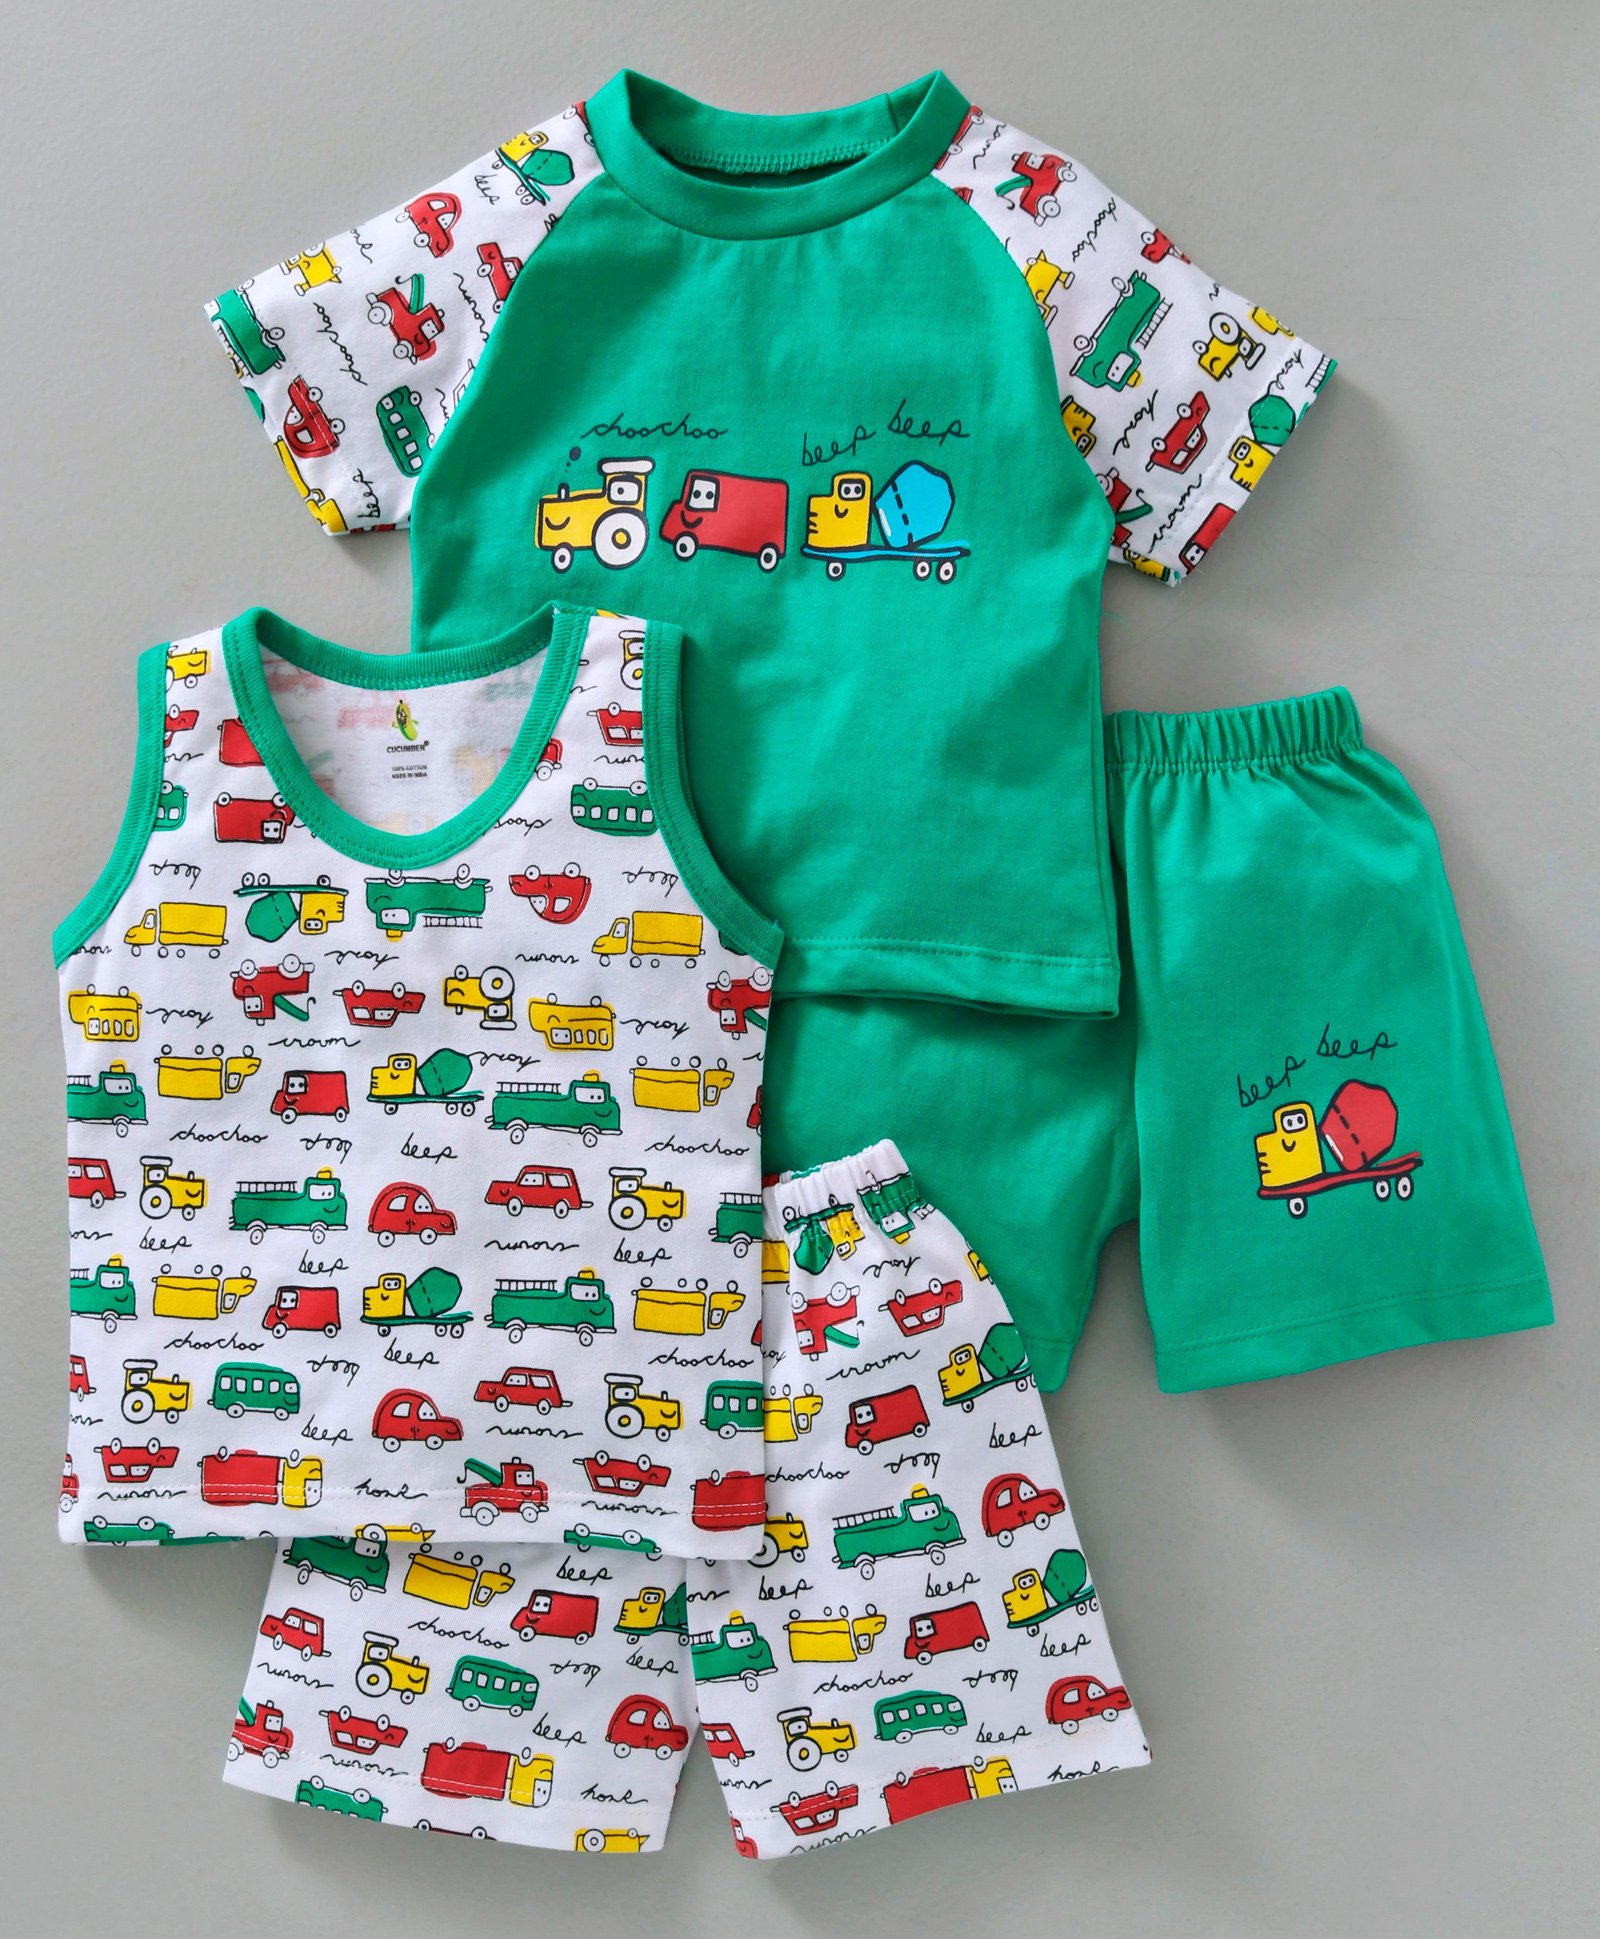 Buy Cucumber Round Neck Tee With Shorts Vehicle Print Pack of 2 Green for  Boys (3-6 Months) Online in India, Shop at FirstCry com - 2468953